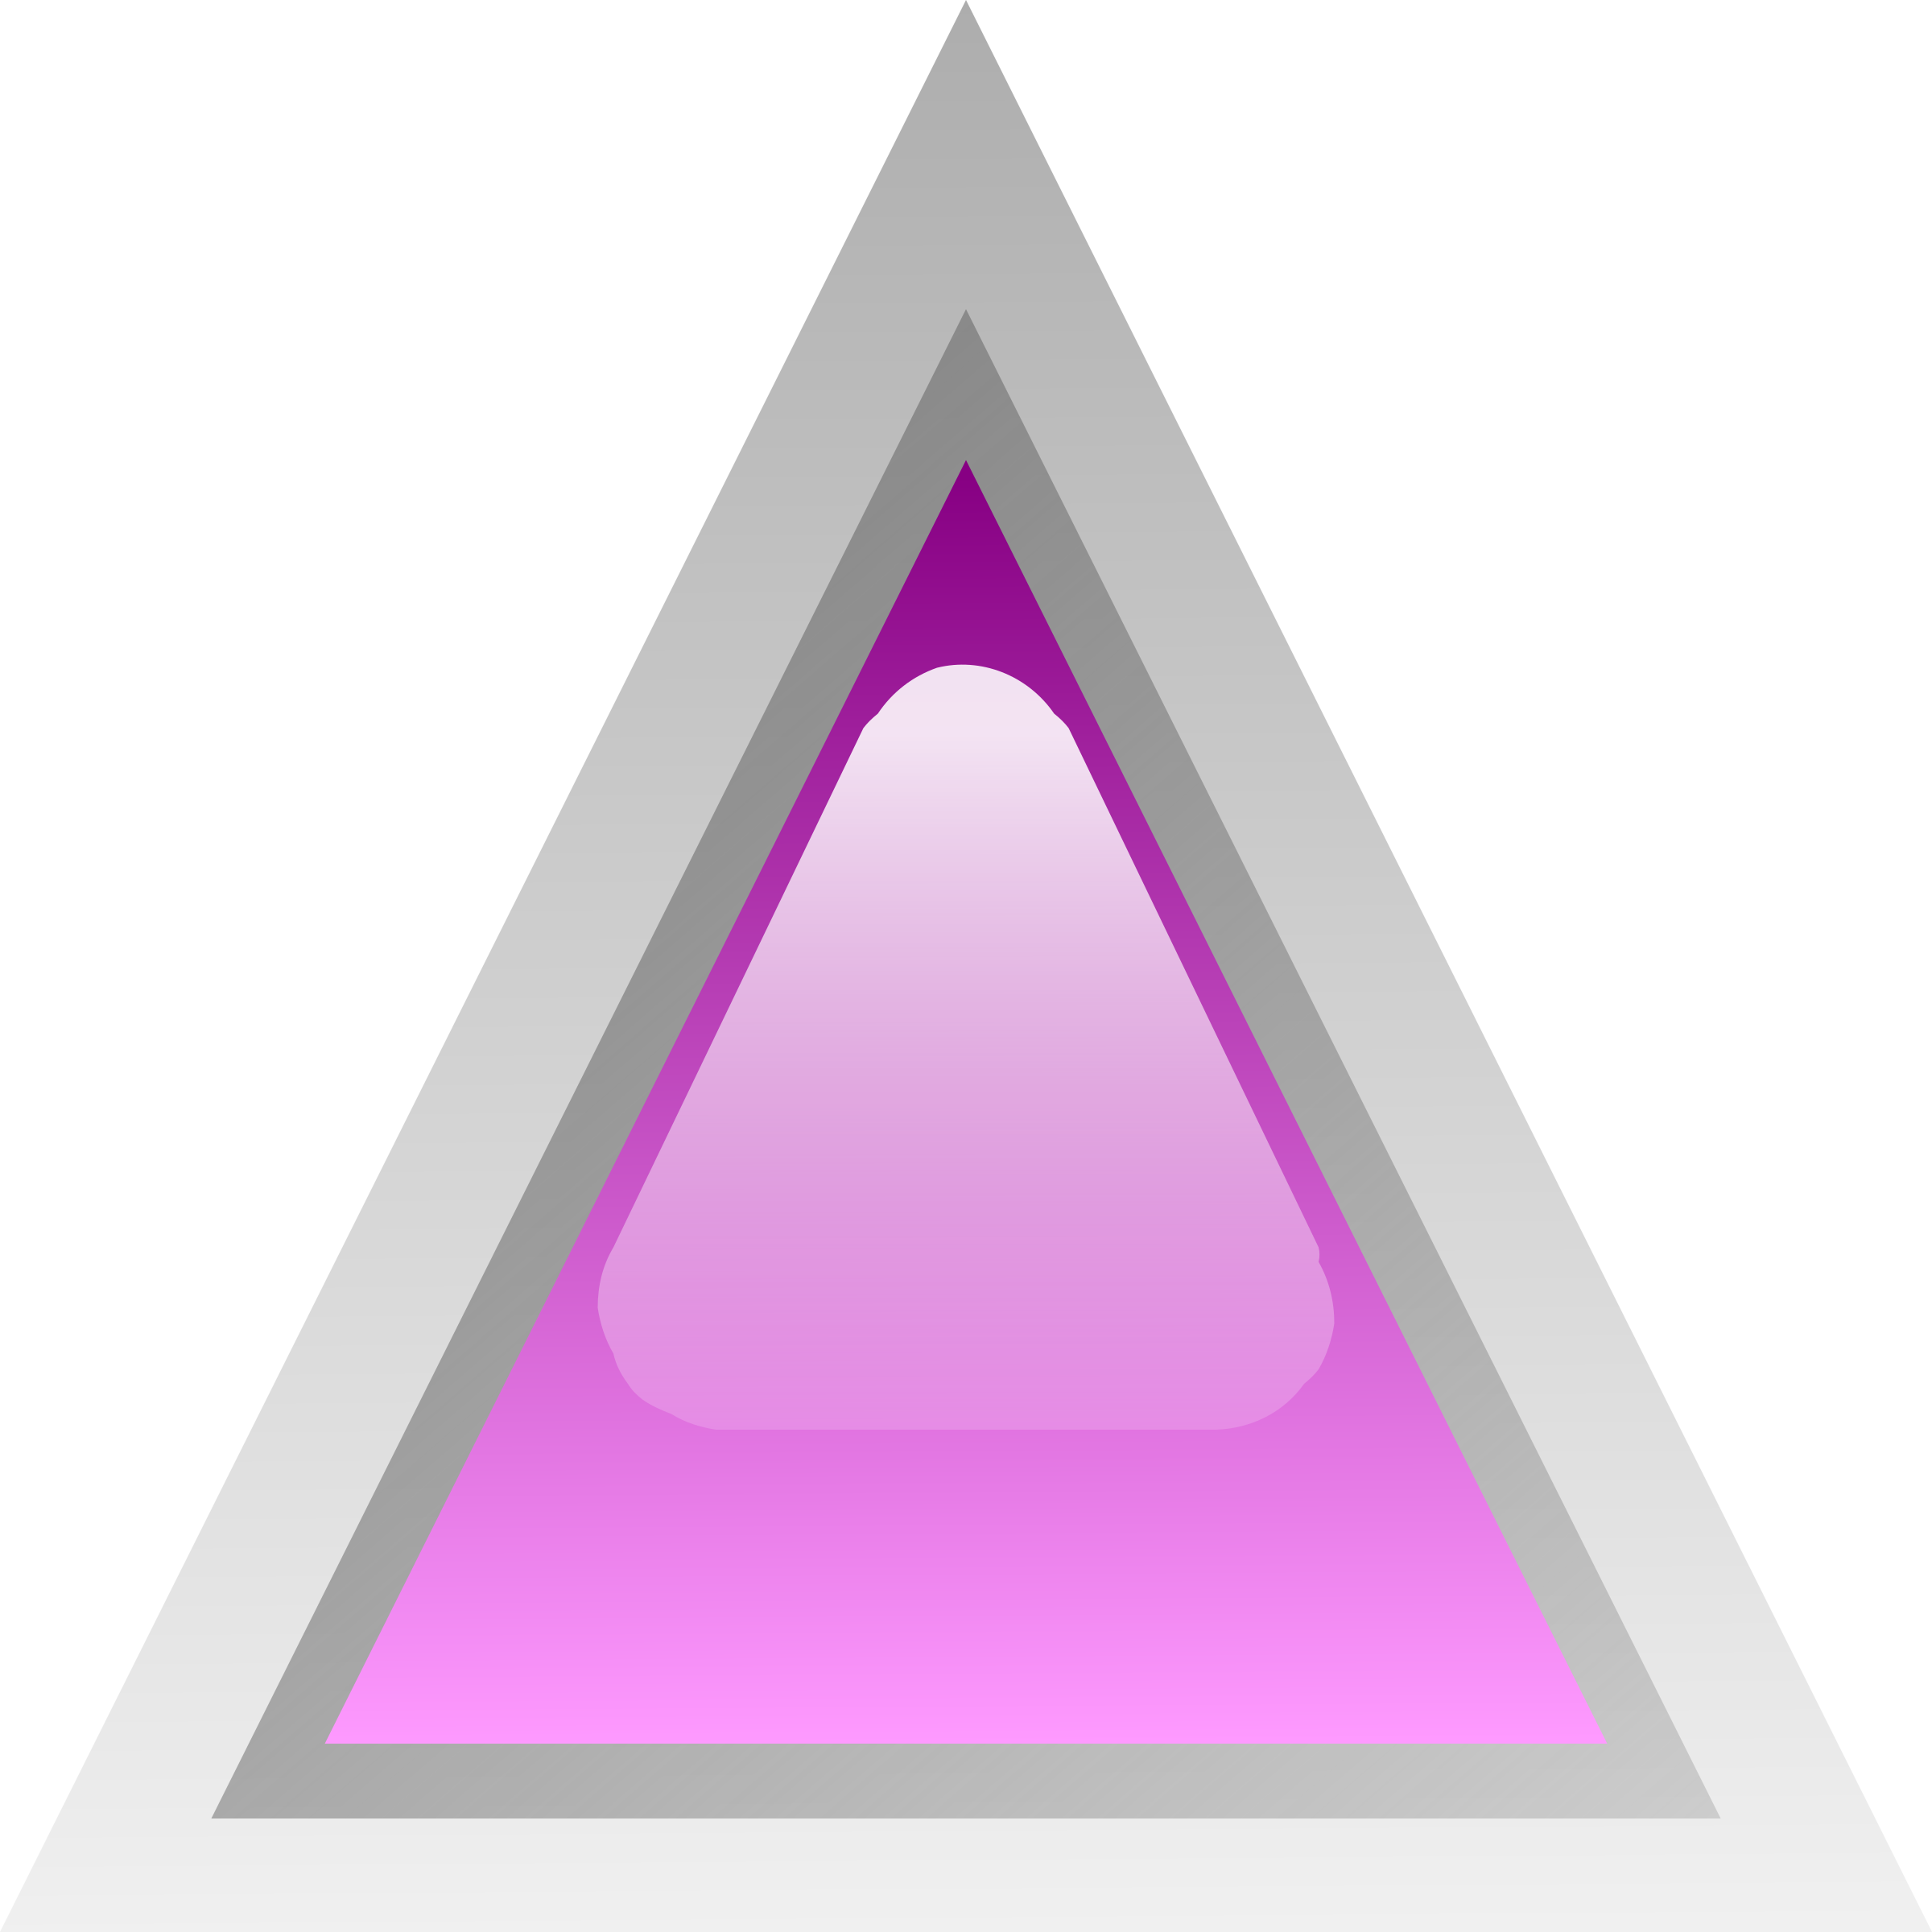 led triangular purple by Anonymous